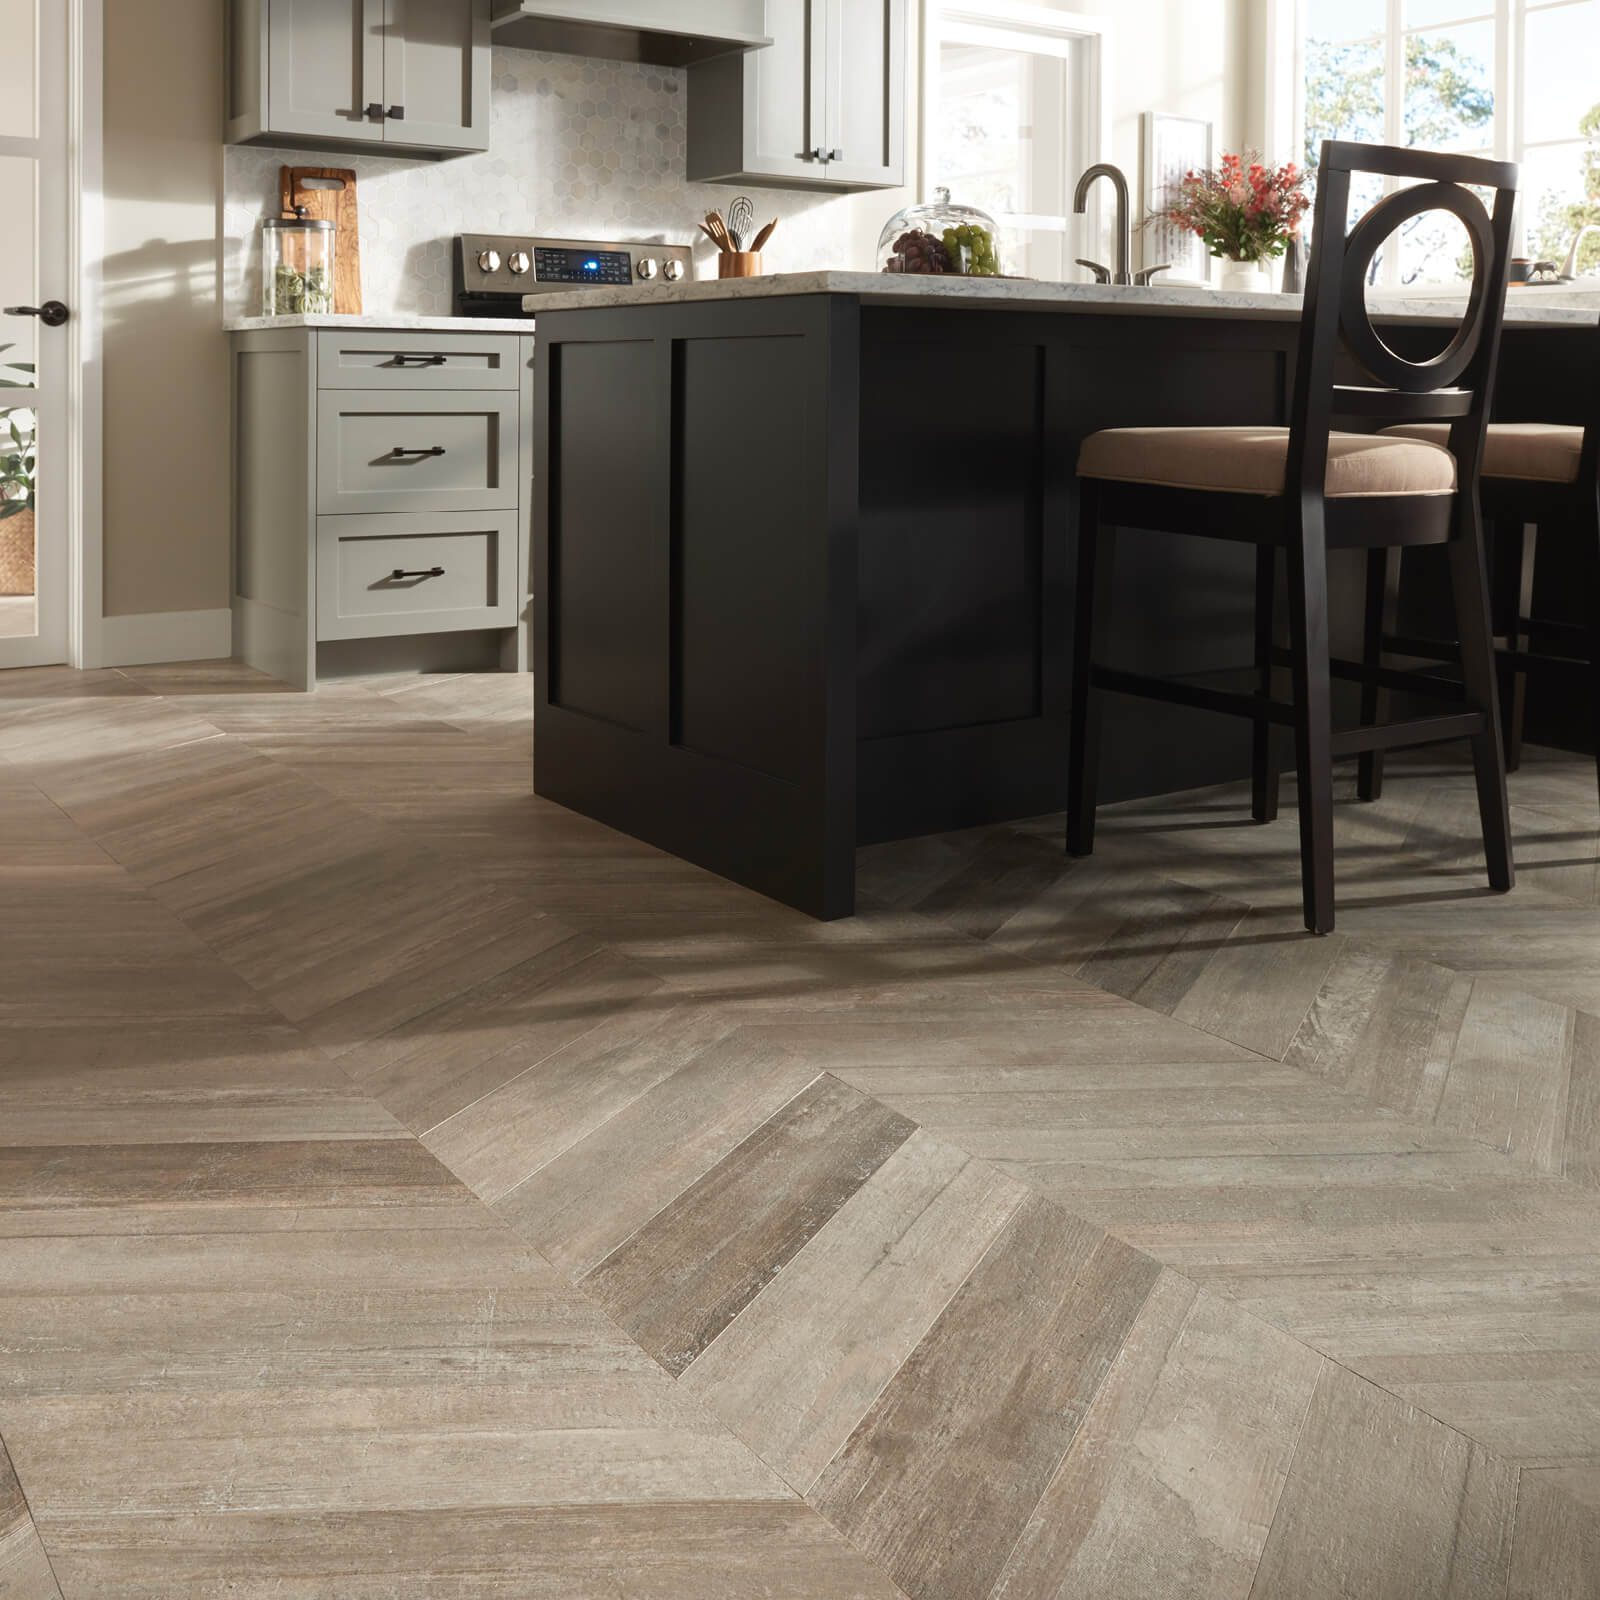 Nearest Tile Store for Variety Tiles | Leicester Flooring